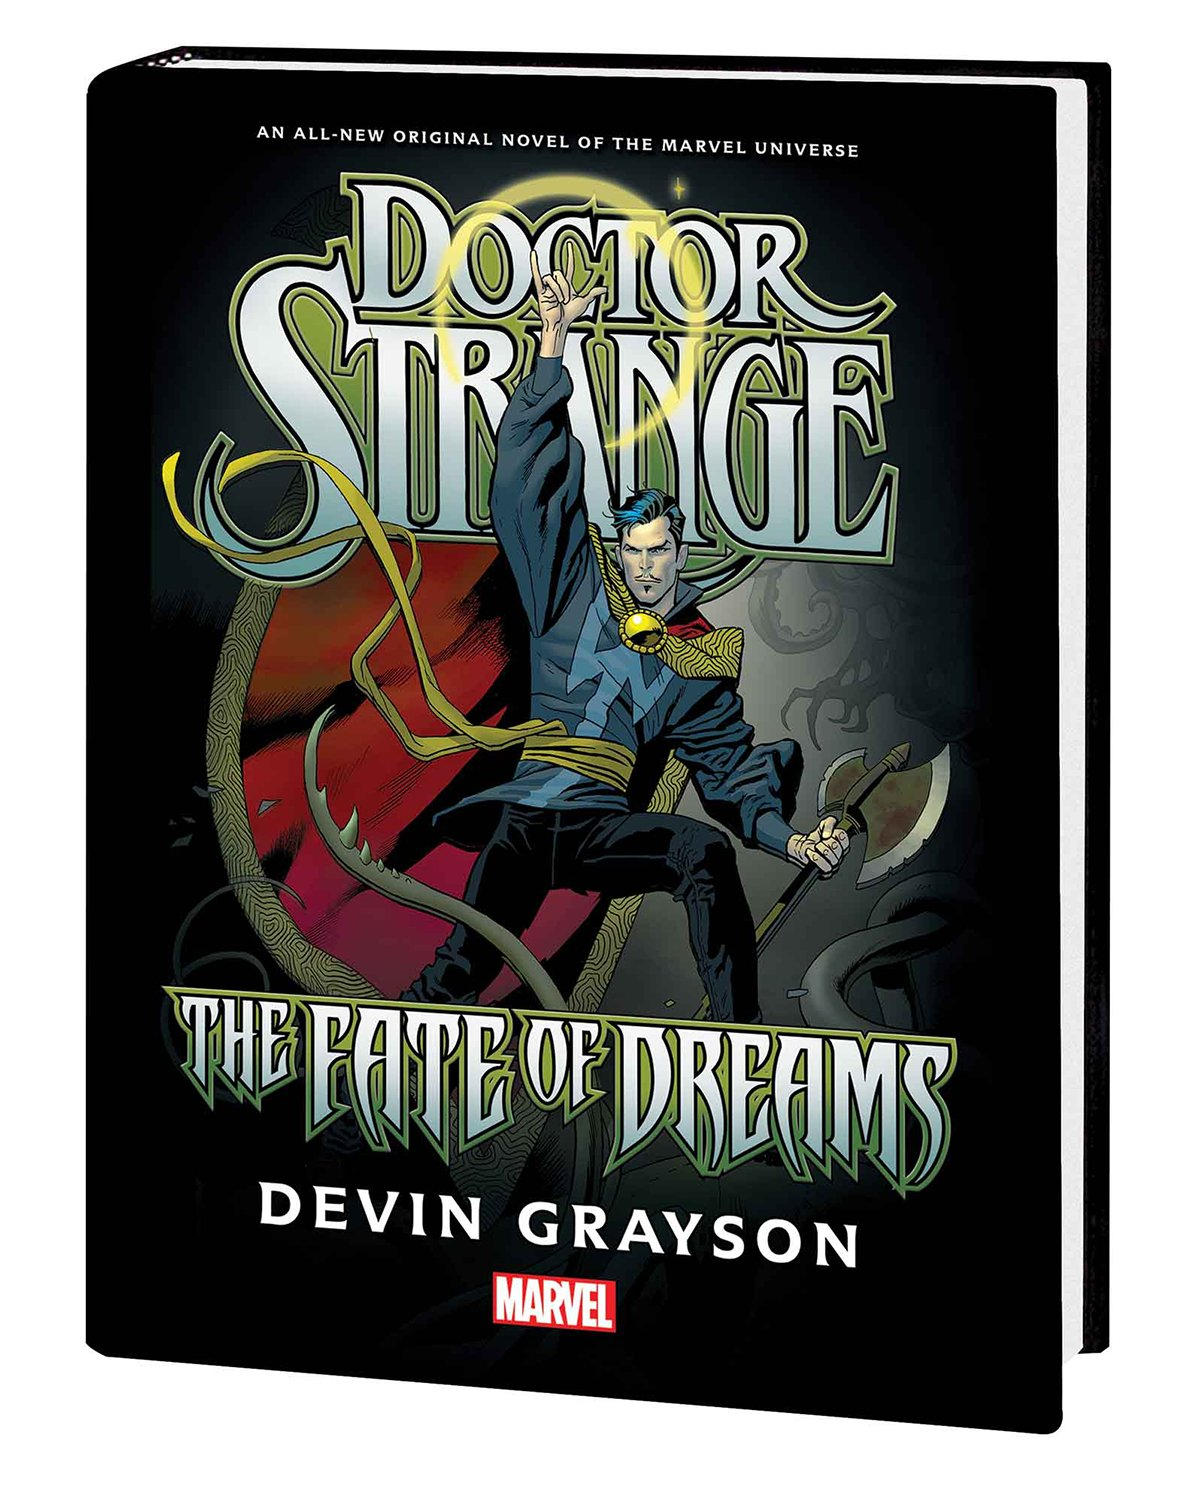 Doctor Strange: The Fate of Devin Grayson 3